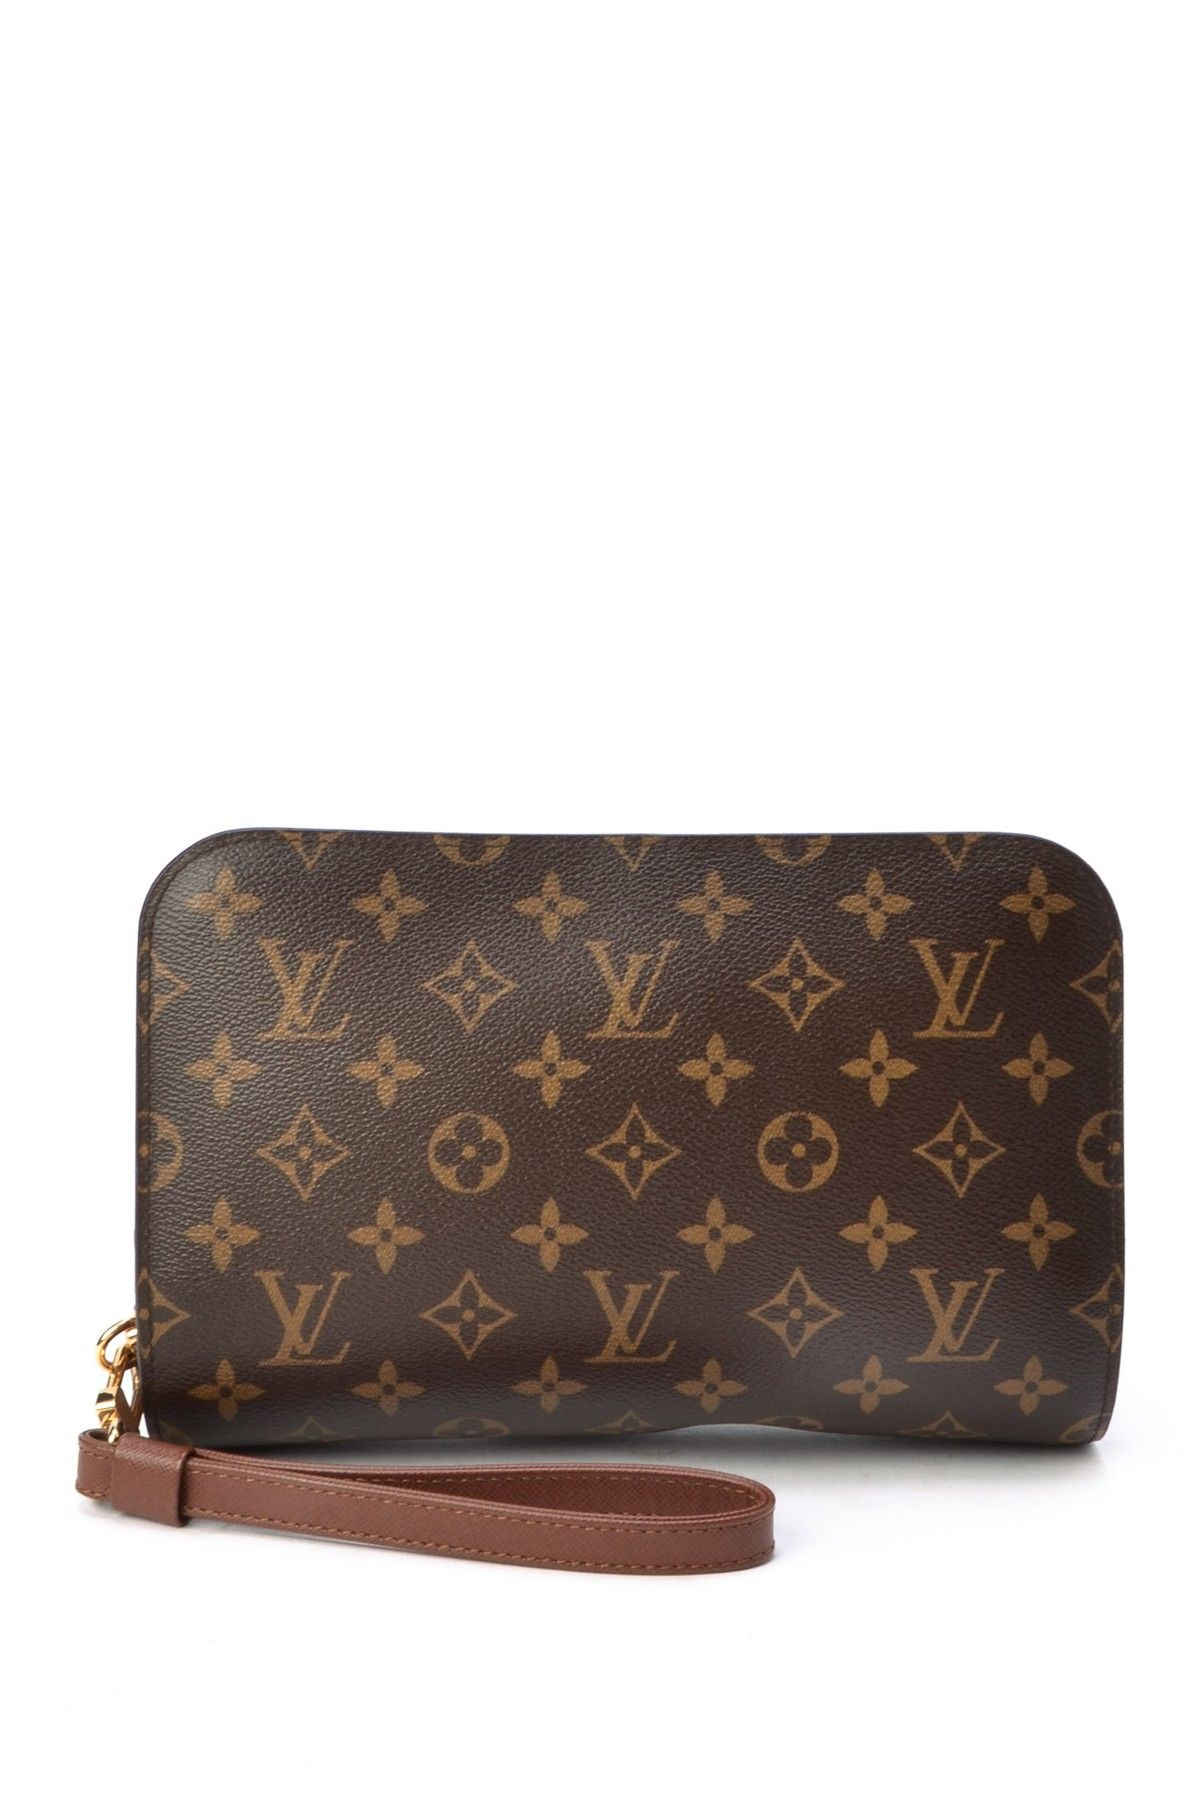 c25865162f7e Vintage Louis Vuitton Leather Orsay Wristlet on HauteLook